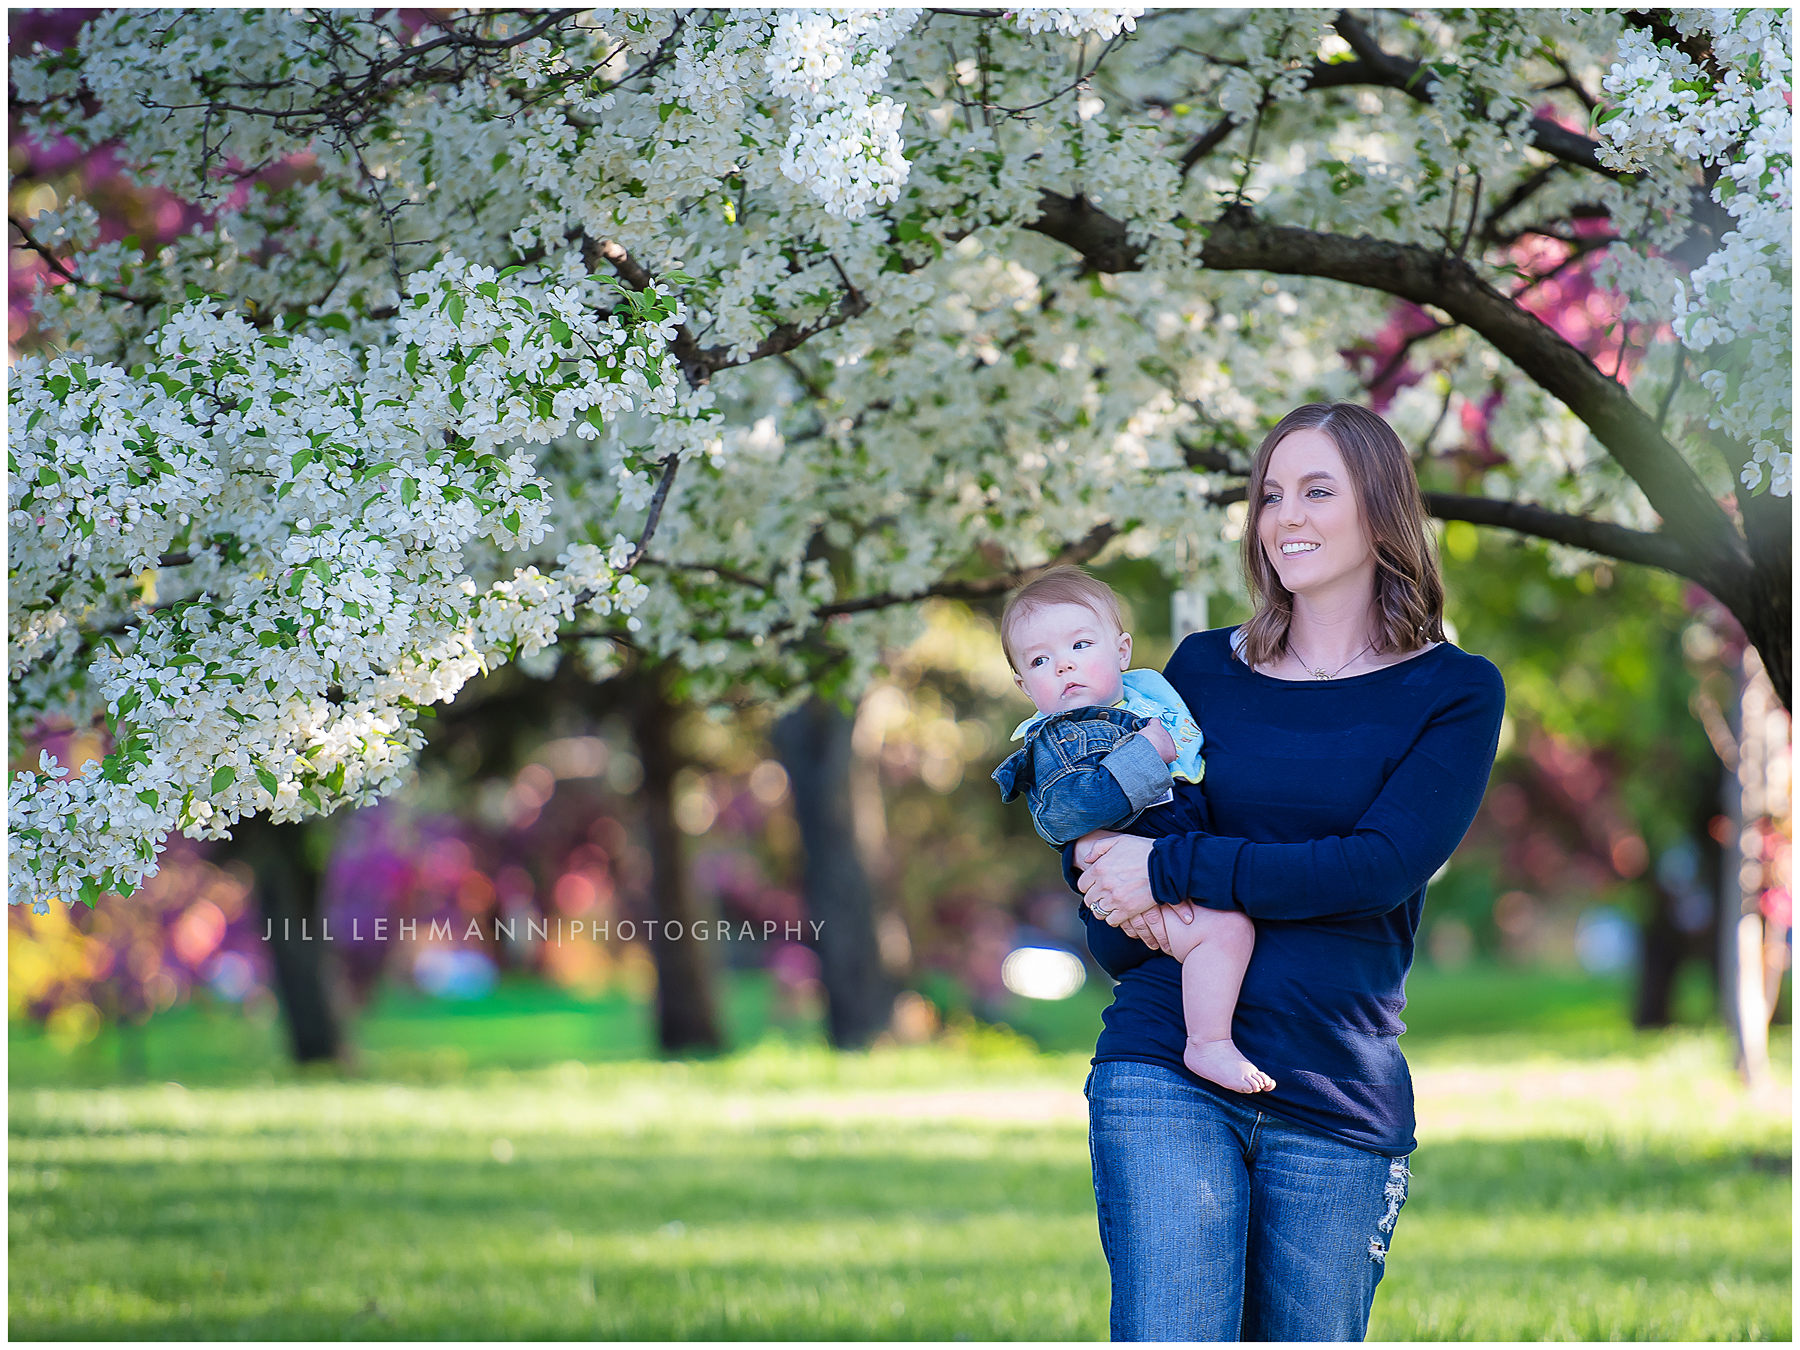 Wedding, Baby, Family, Child Photography in Des Moines, IA